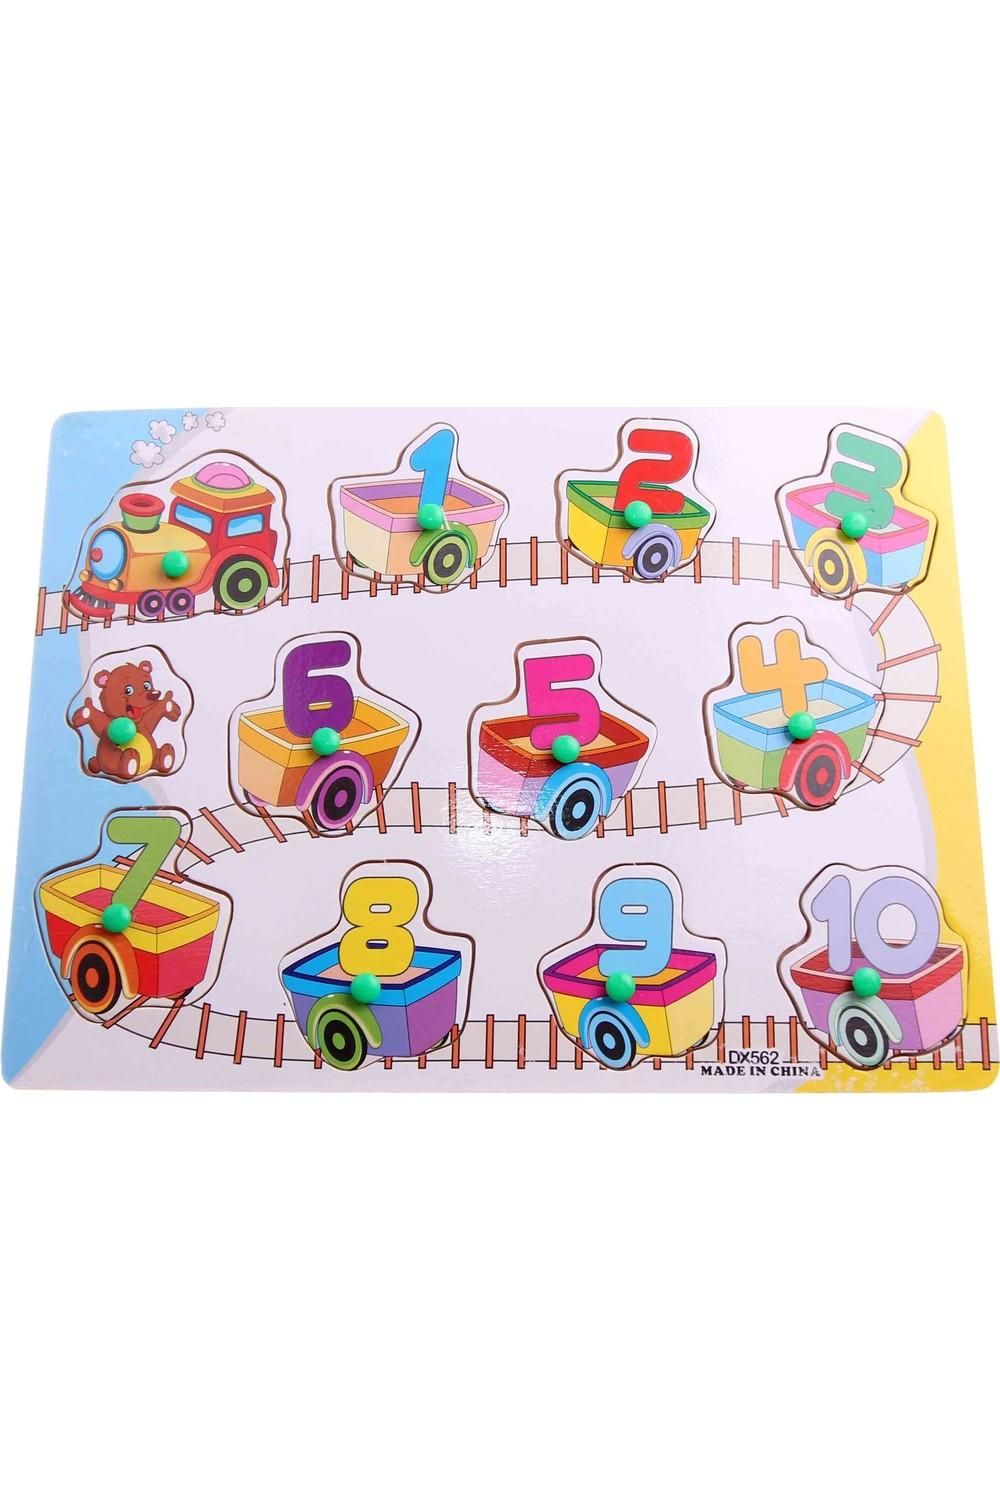 Akademiloji Wooden Educational Puzzle